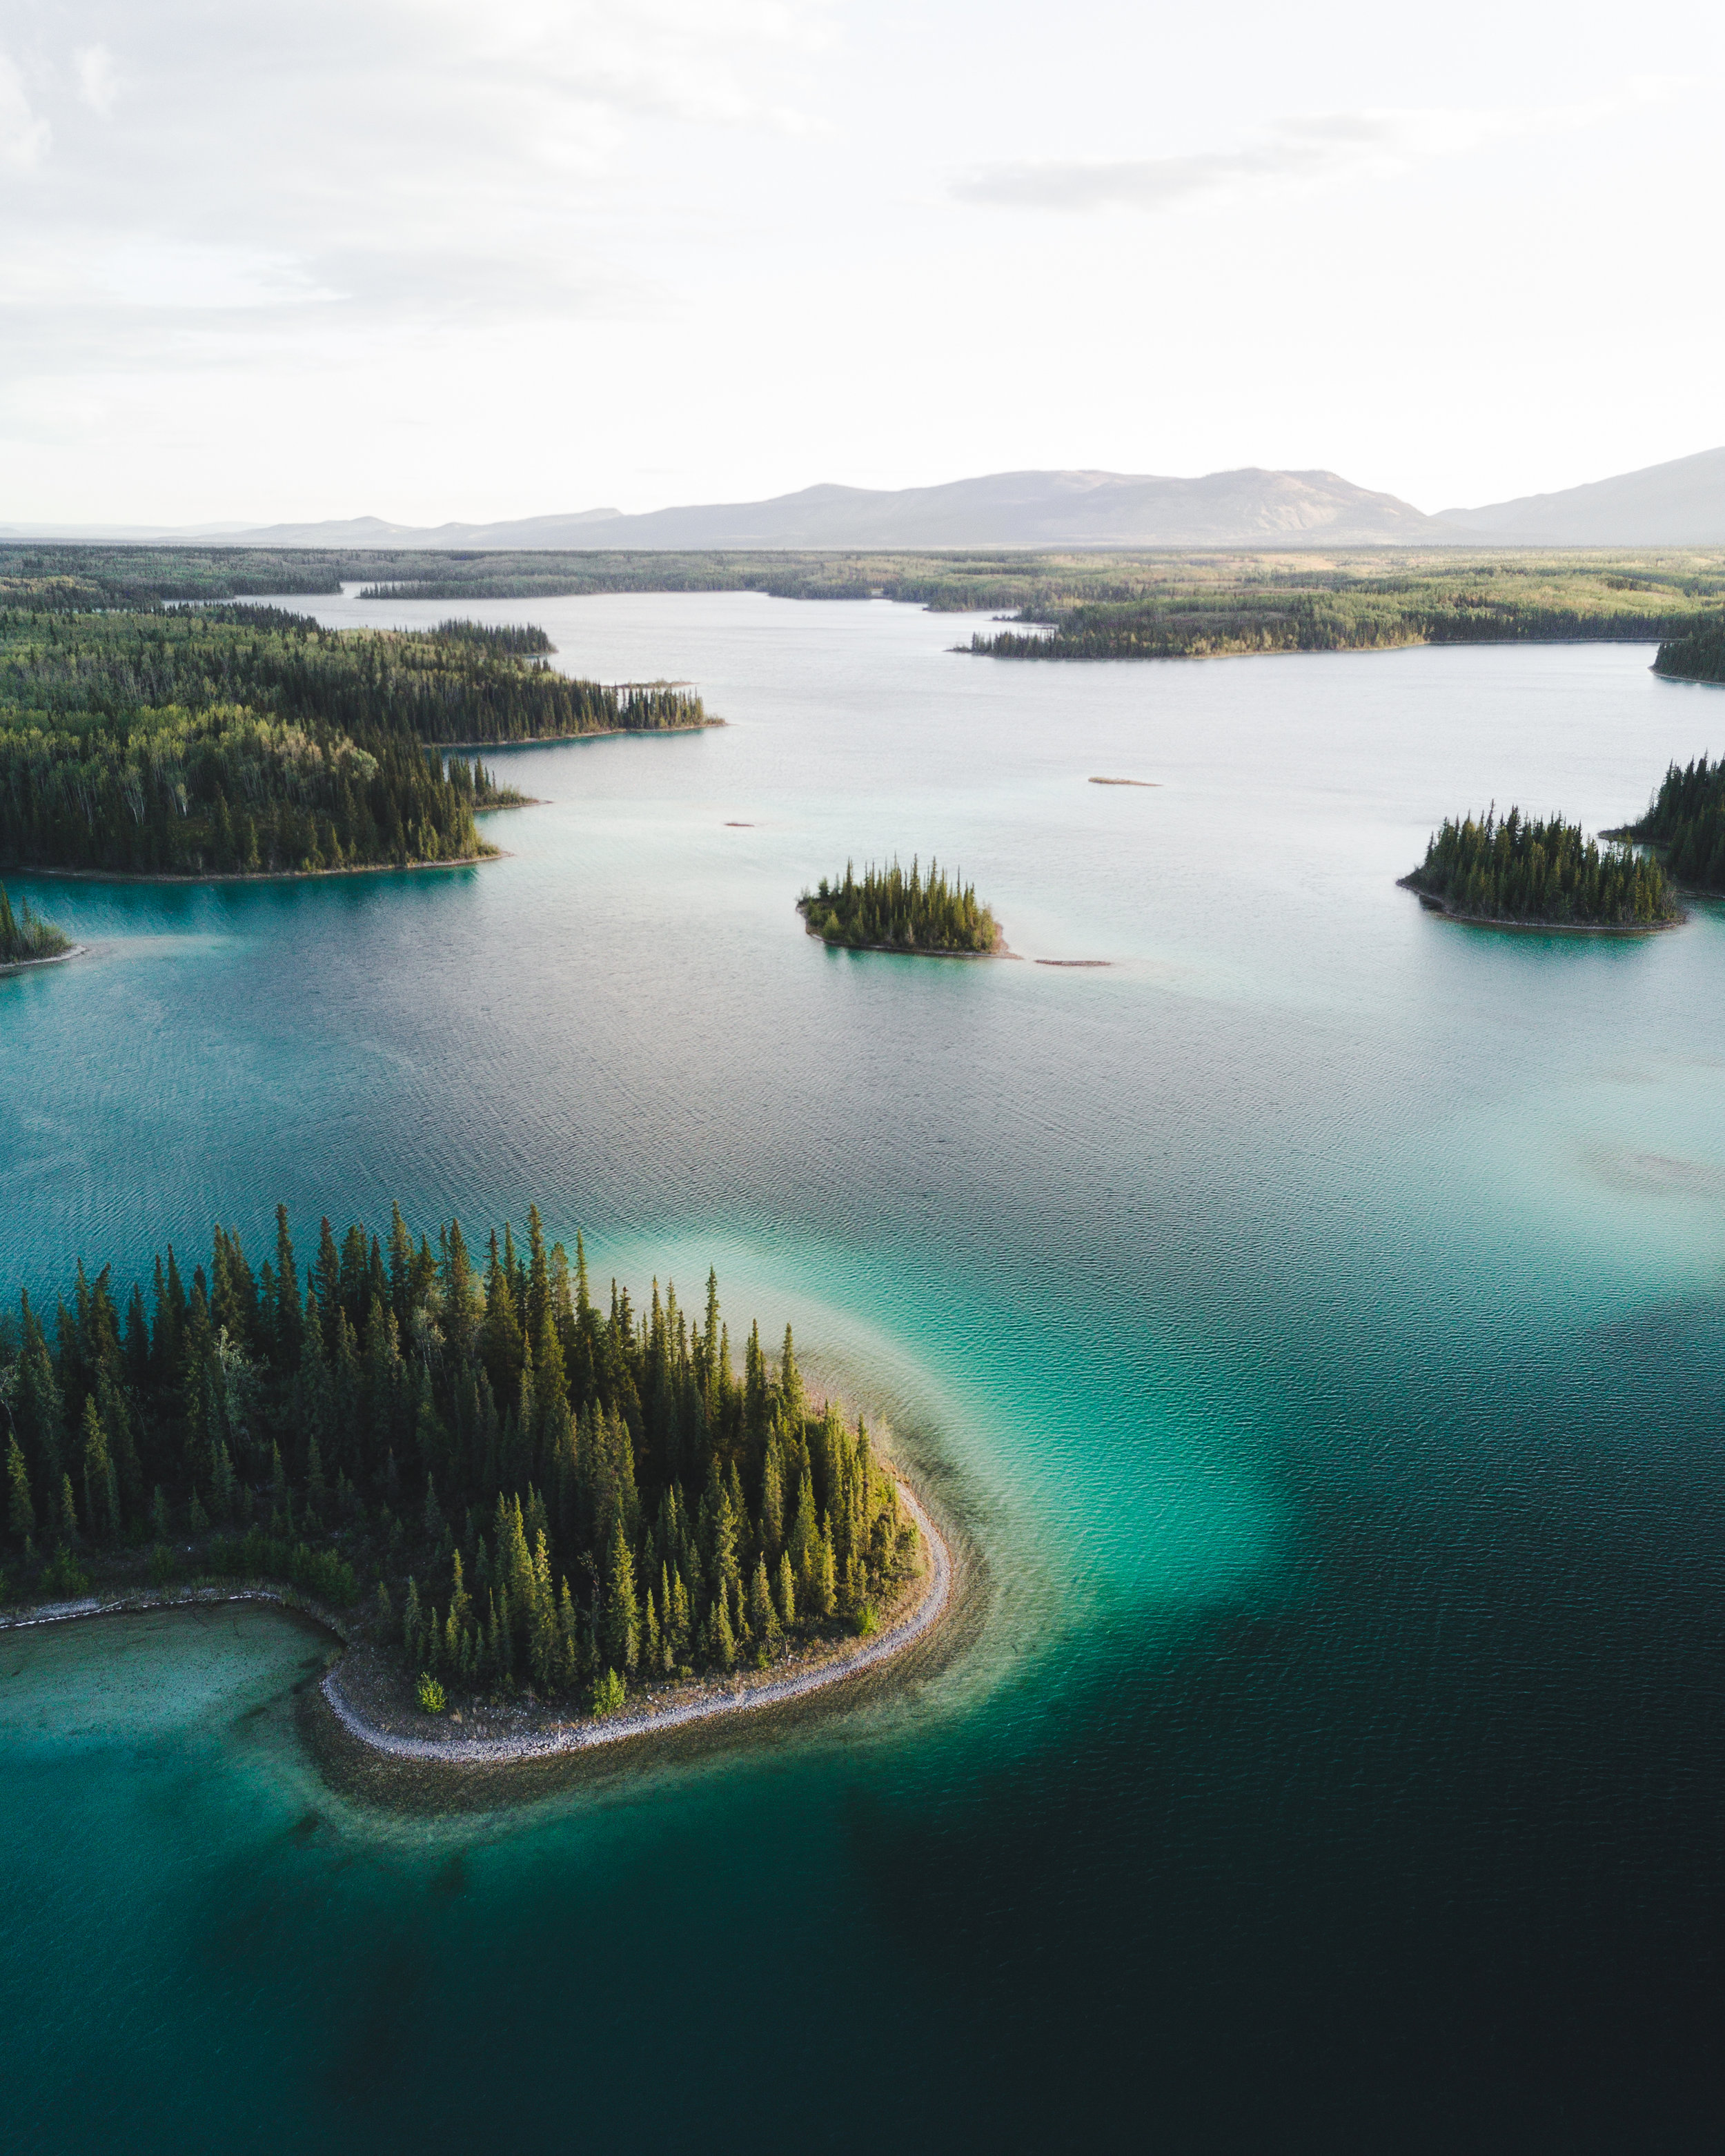 The crystal clear blue water of Boya Lake Provincial Park in Northern British Columbia looks more like the Caribbean than Canada.